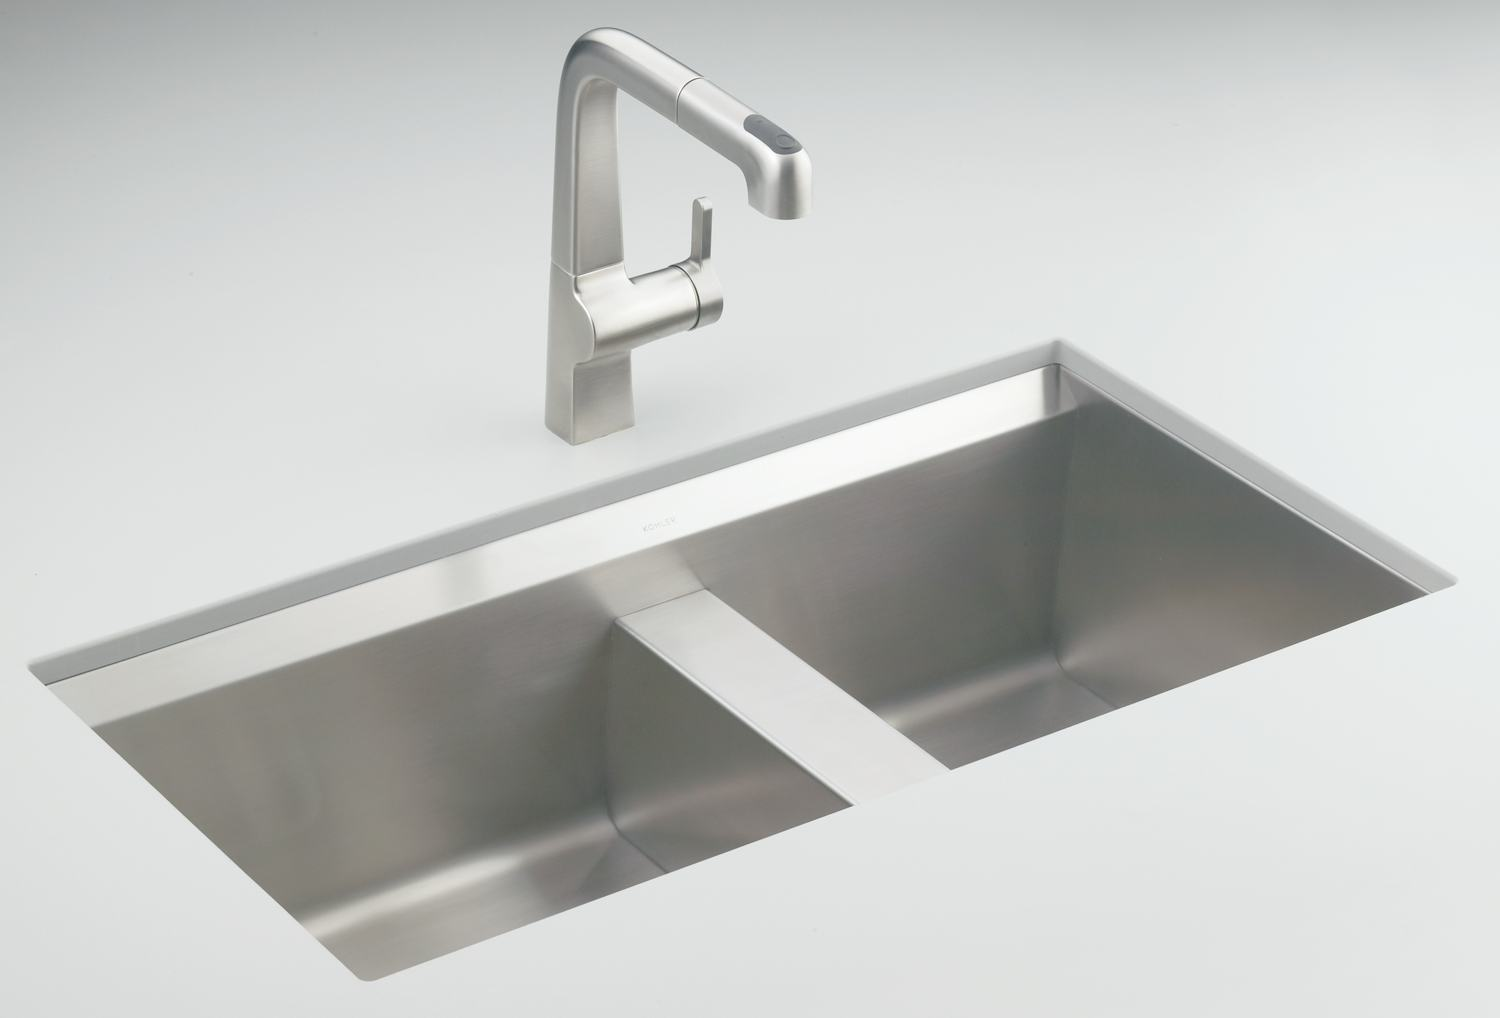 Stainless Steel Offset Double Kitchen Sink